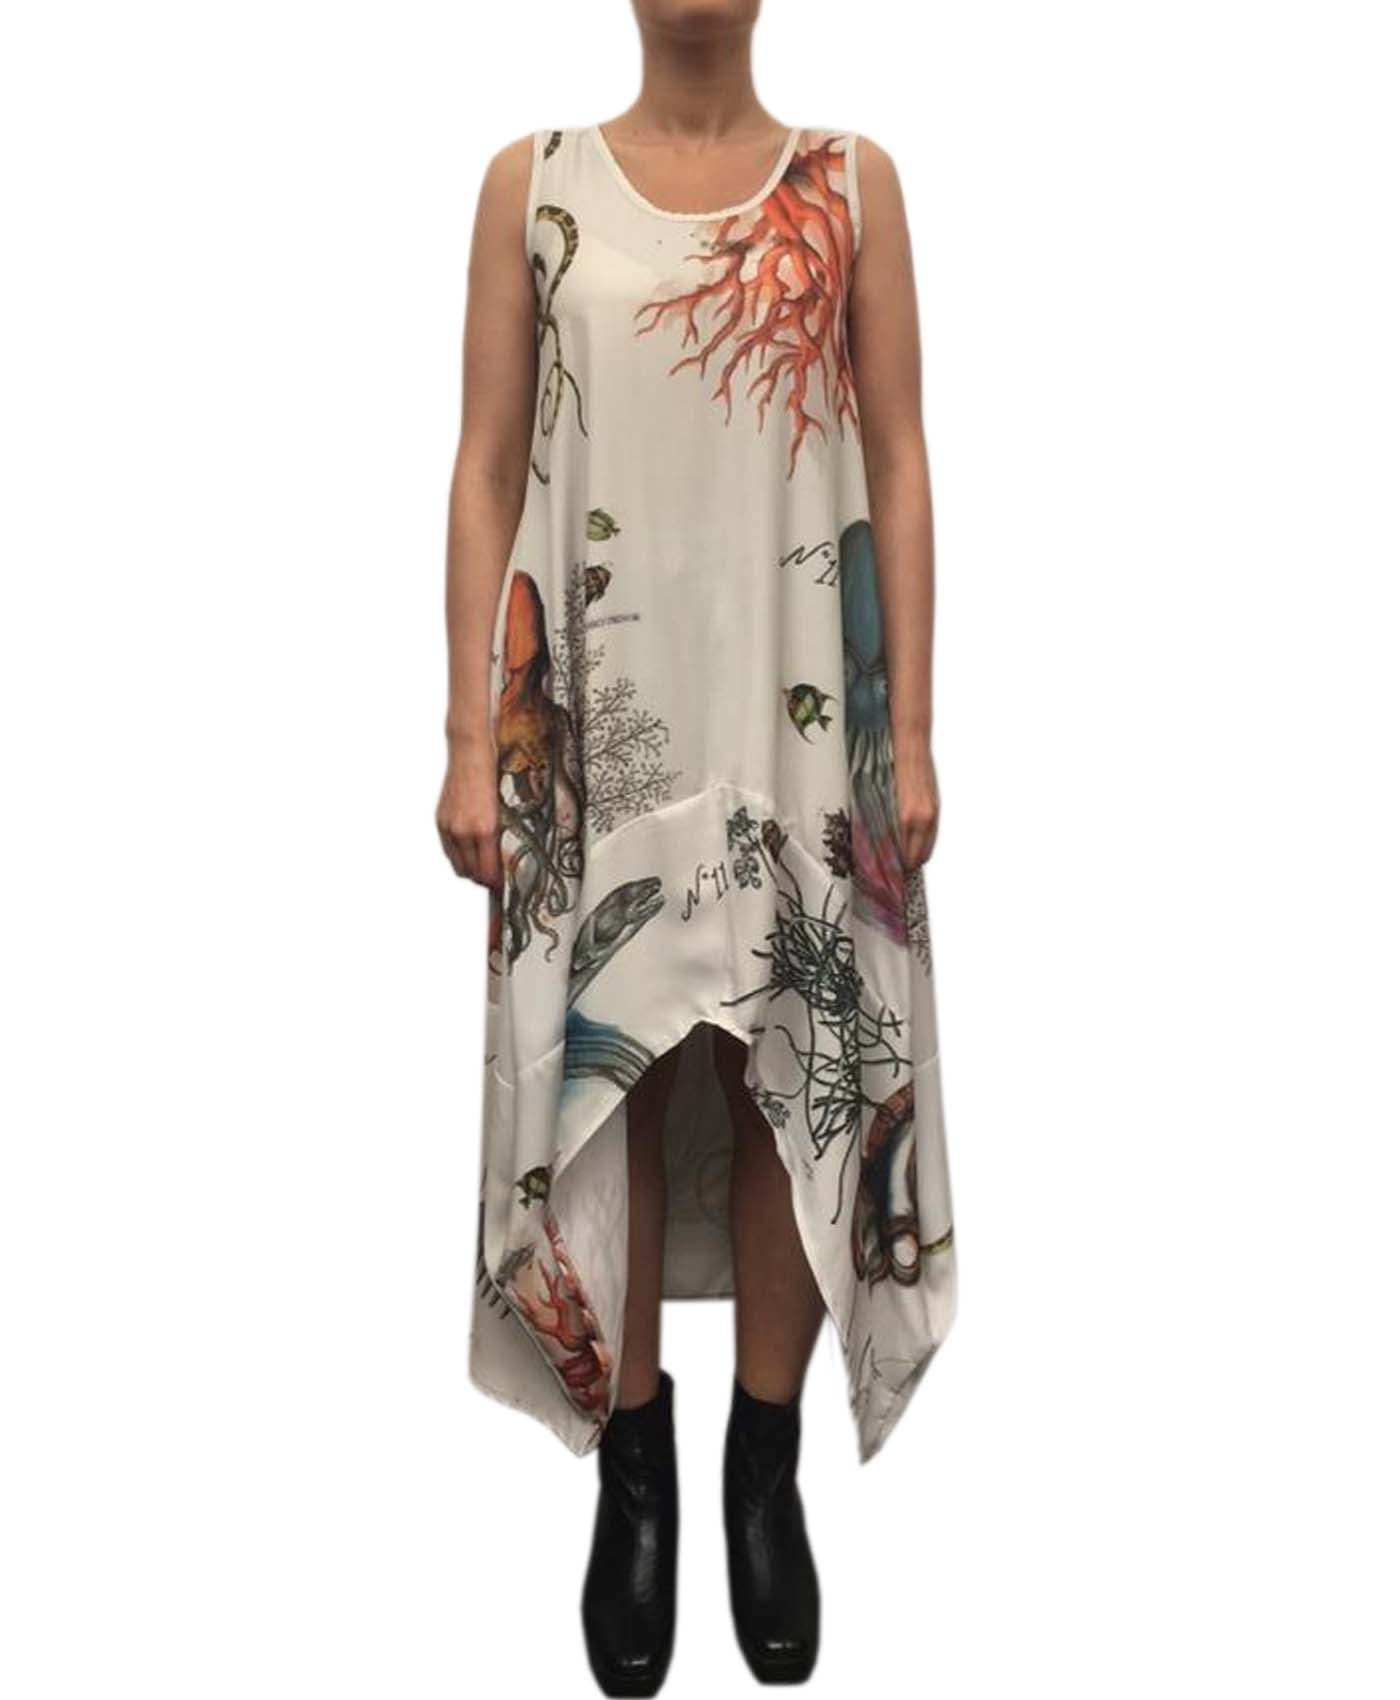 Botanical Parachute Dress